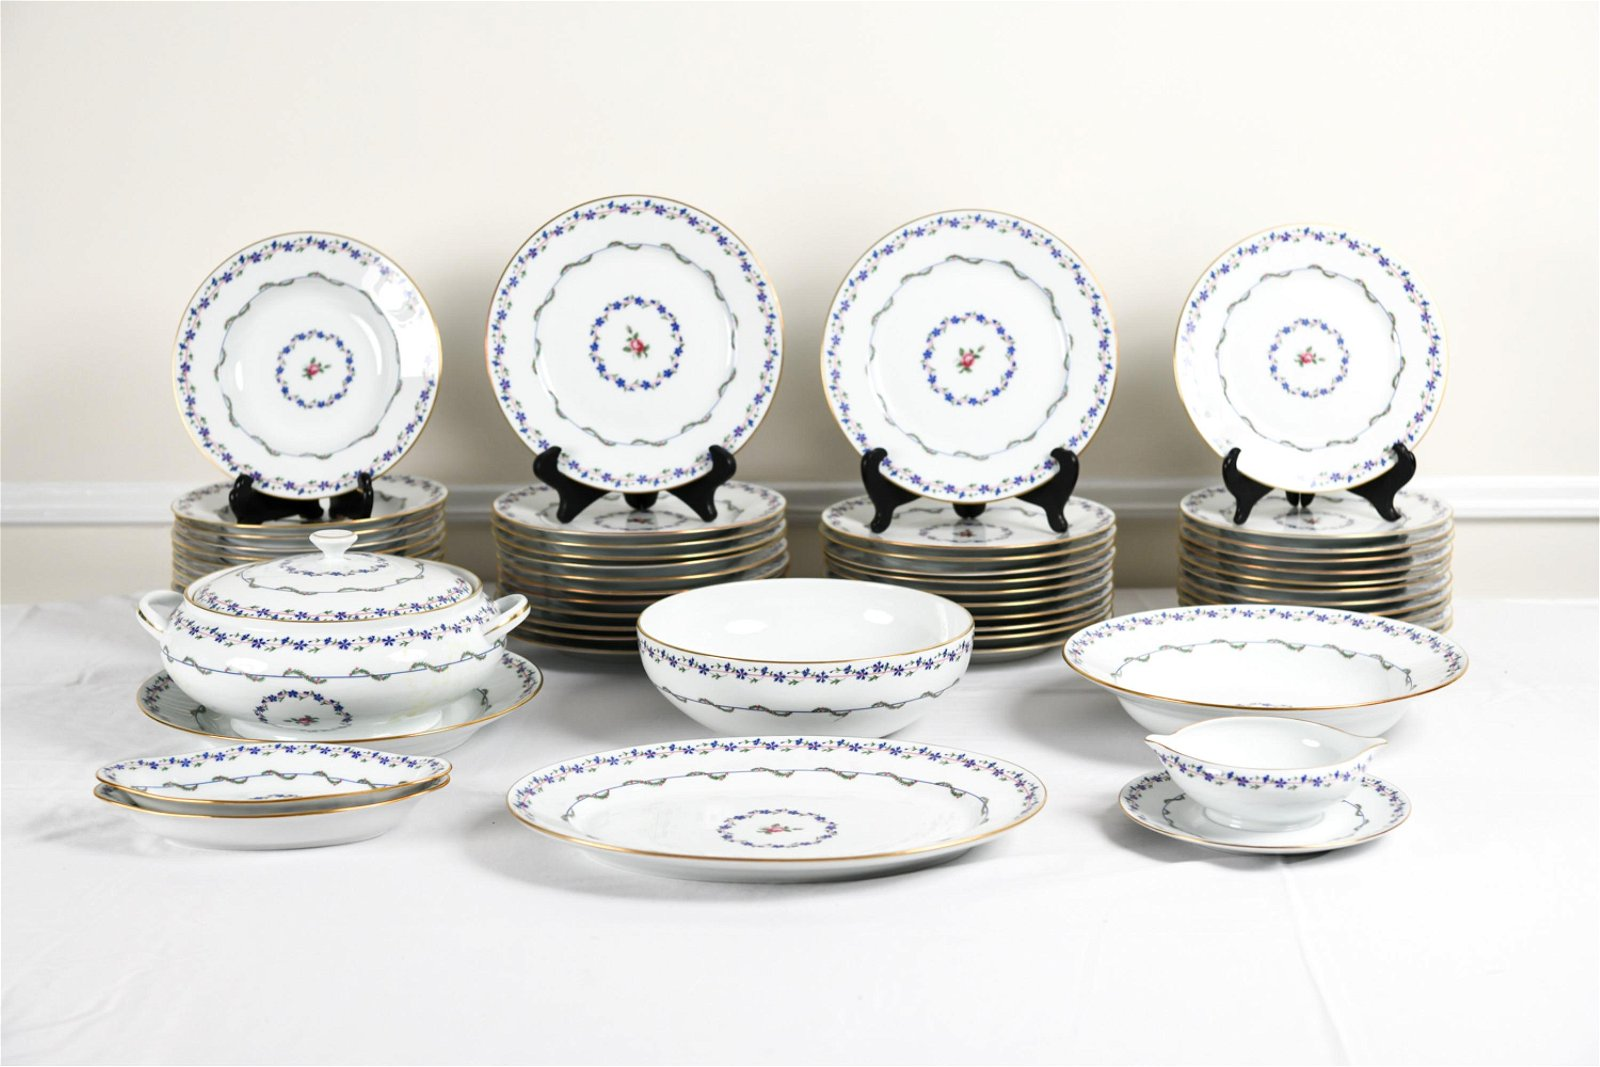 RAYNAUD LIMOGES LUNCHEON PORCELAIN SERVICE